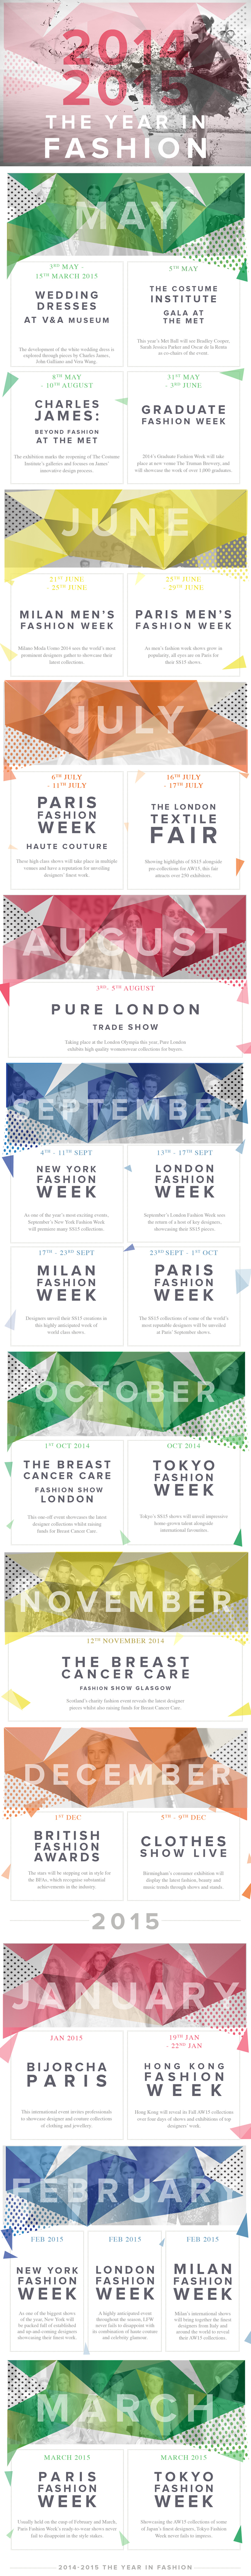 the-year-in-fashion-infographic